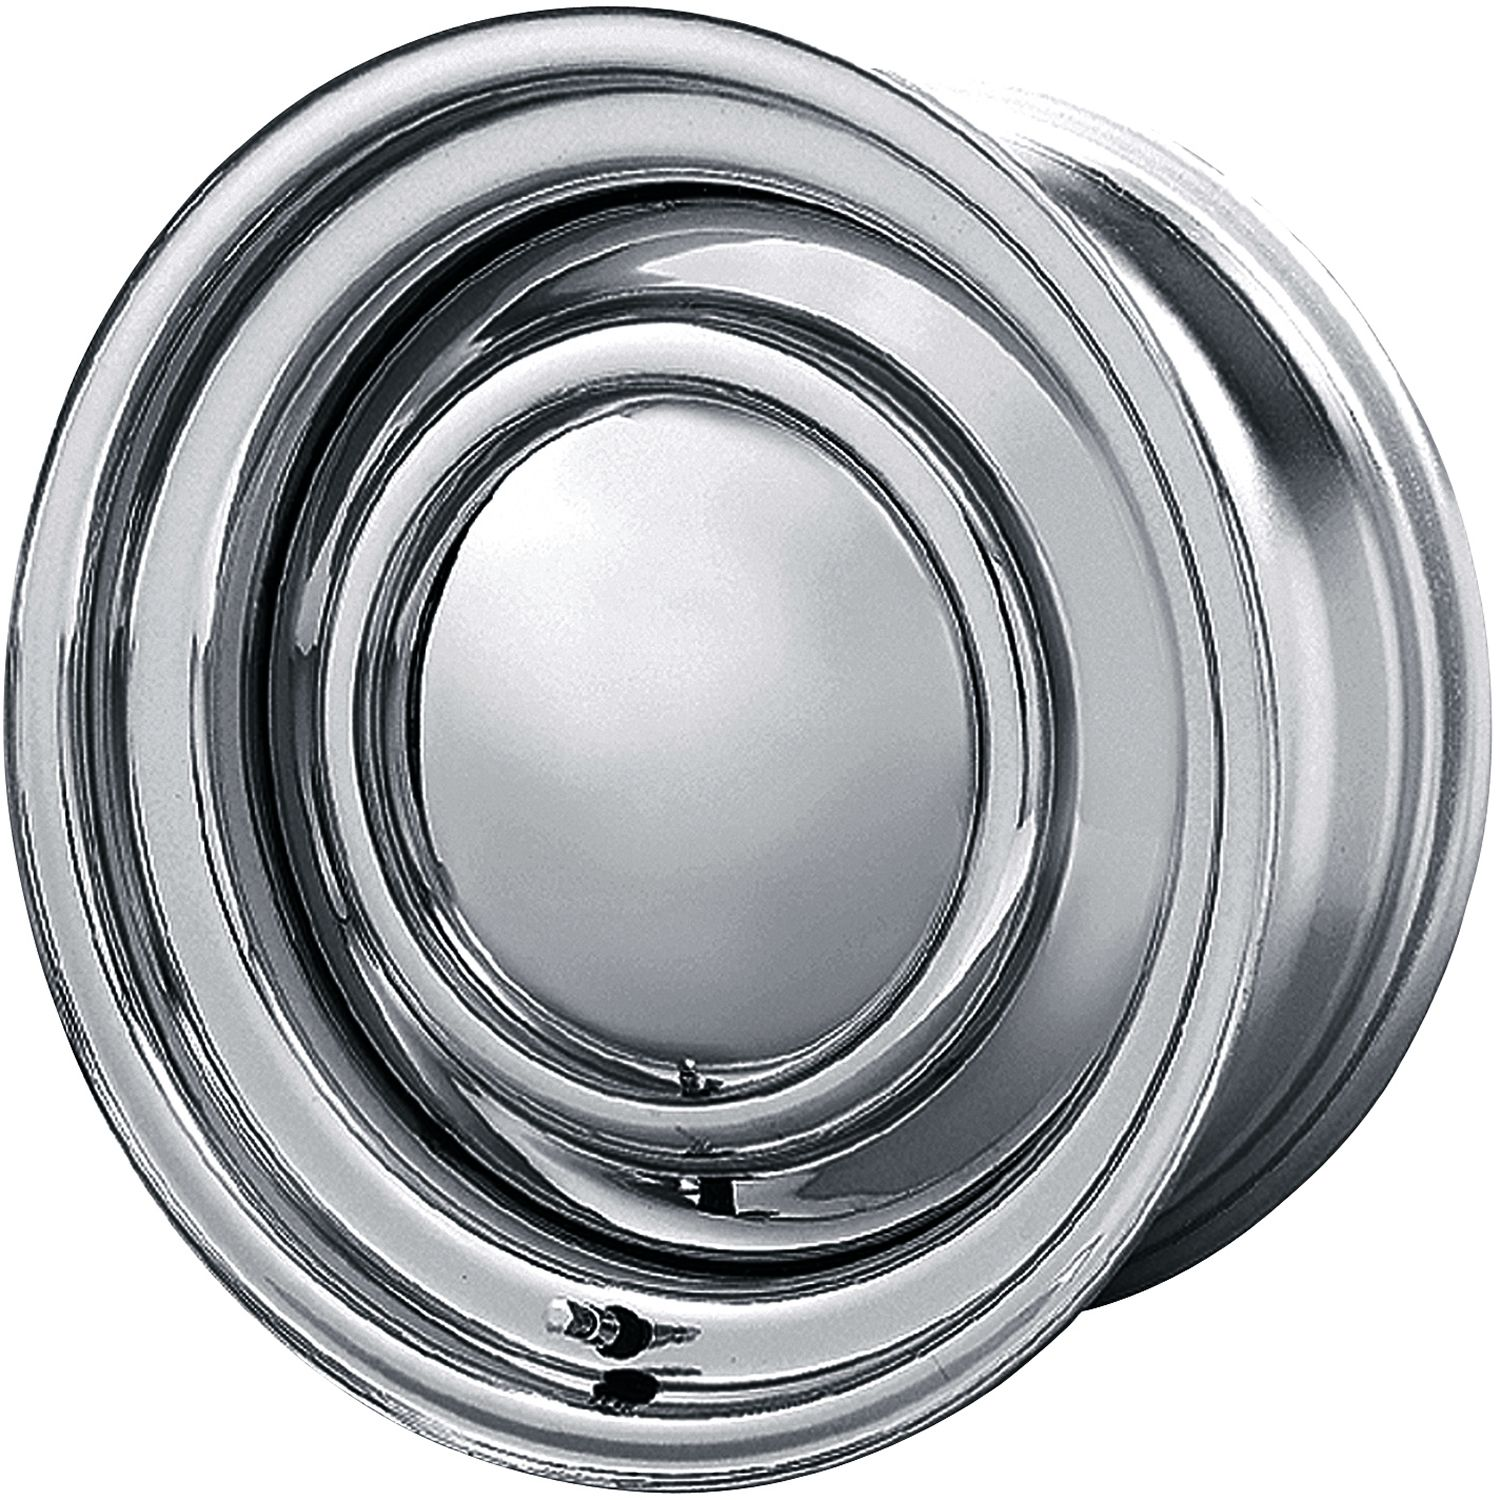 Rims | 14x6 chrome smoothie Wheels Rims 5x4.5 5x4.75 | vehicles ...